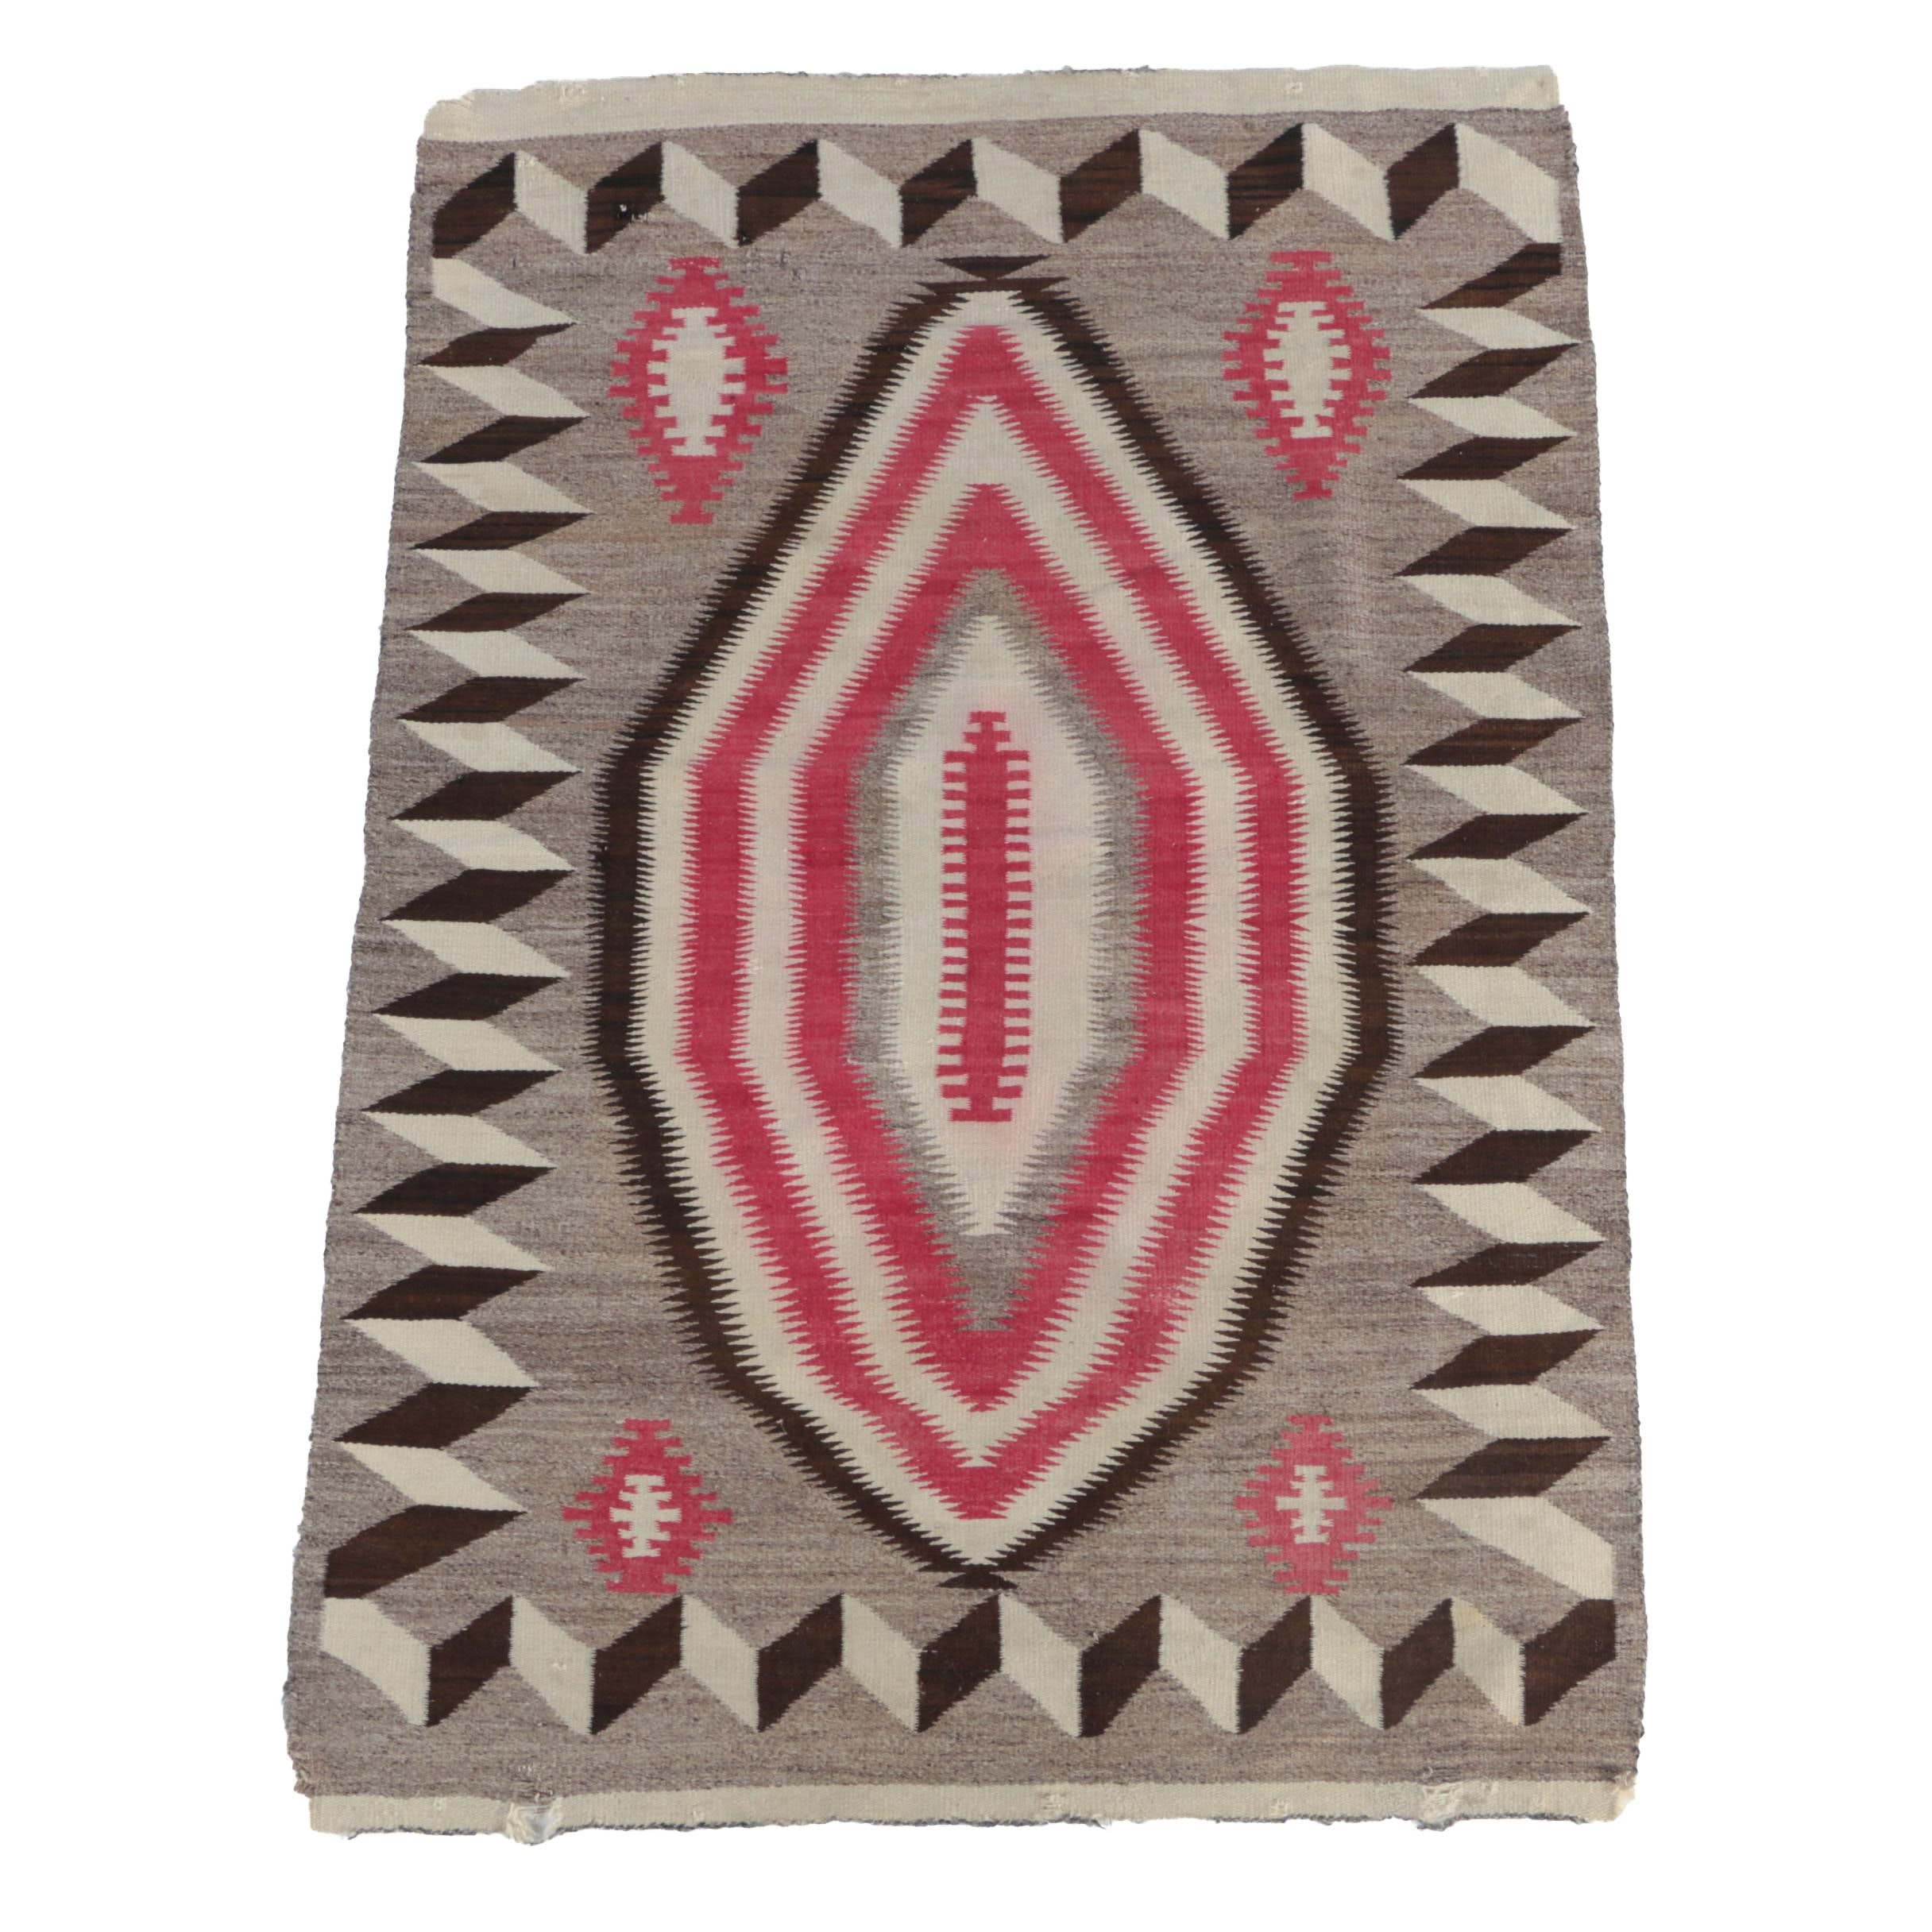 Handwoven Native American Style Area Rug